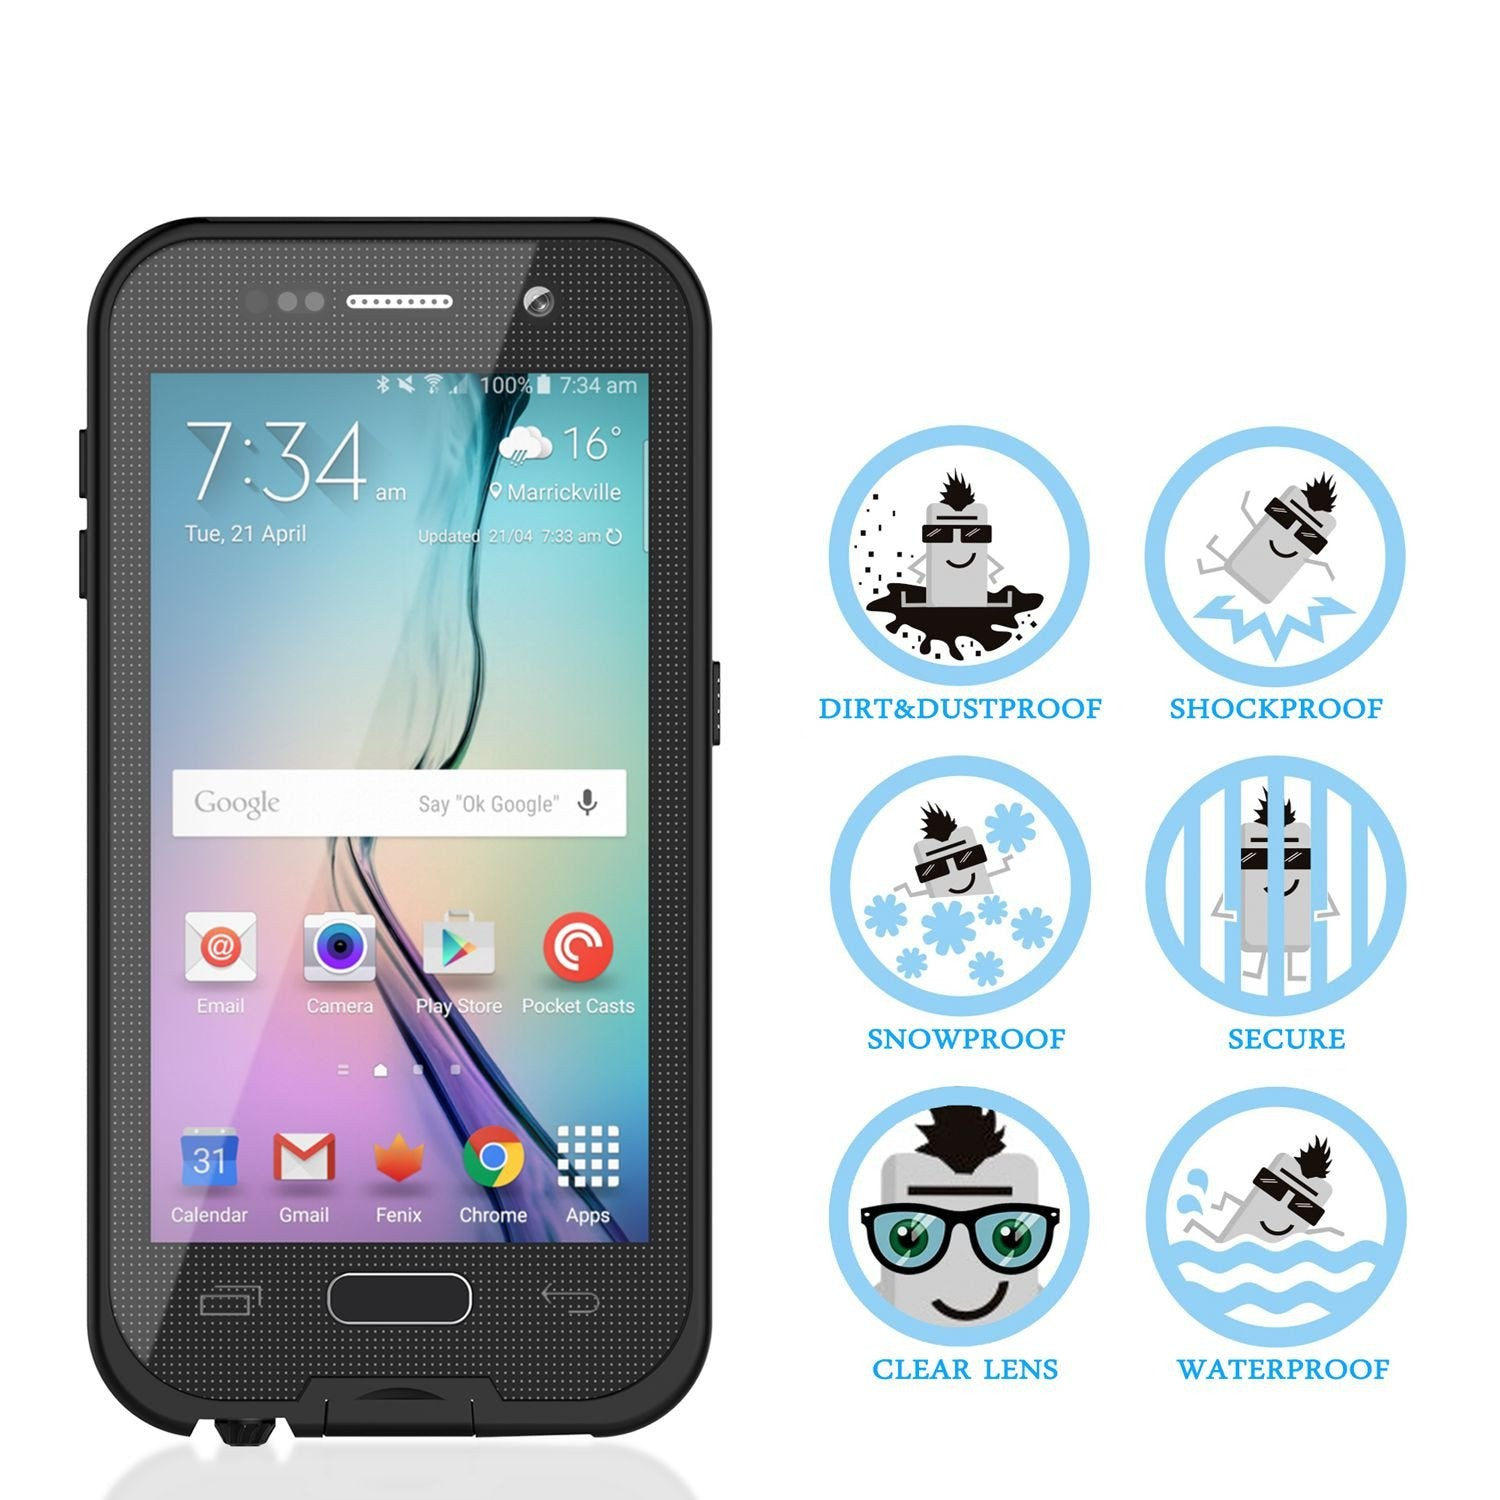 Galaxy S6 Waterproof Case, Punkcase SpikeStar Black Water/Shock/Dirt/Snow Proof | Lifetime Warranty